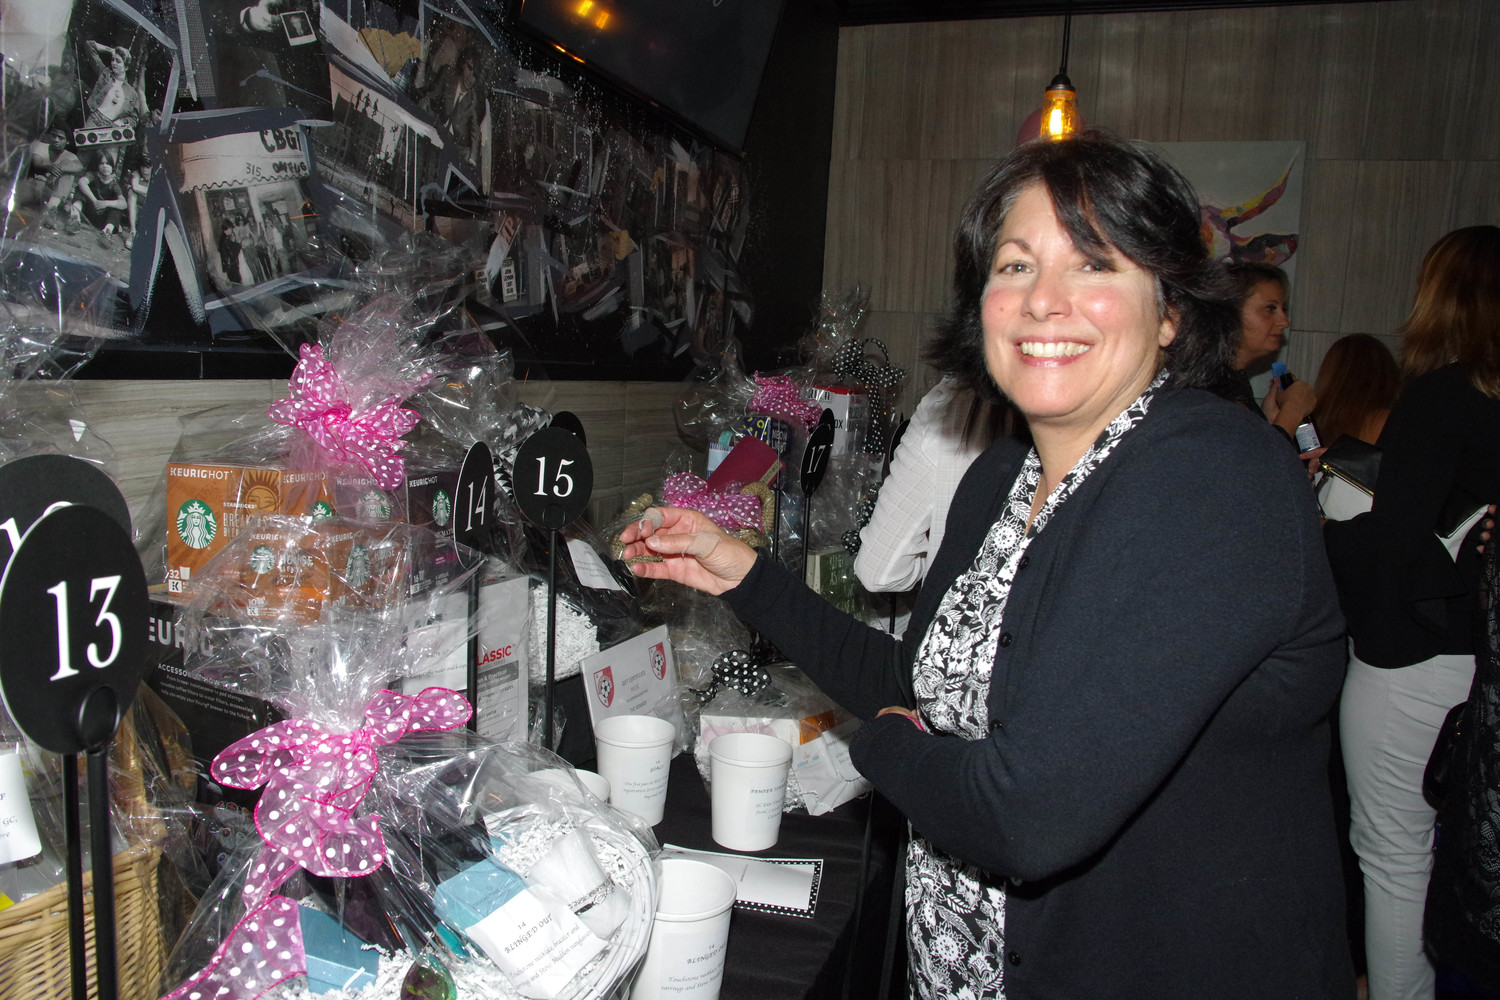 Joanna Bencivenga browsed the raffle prizes.